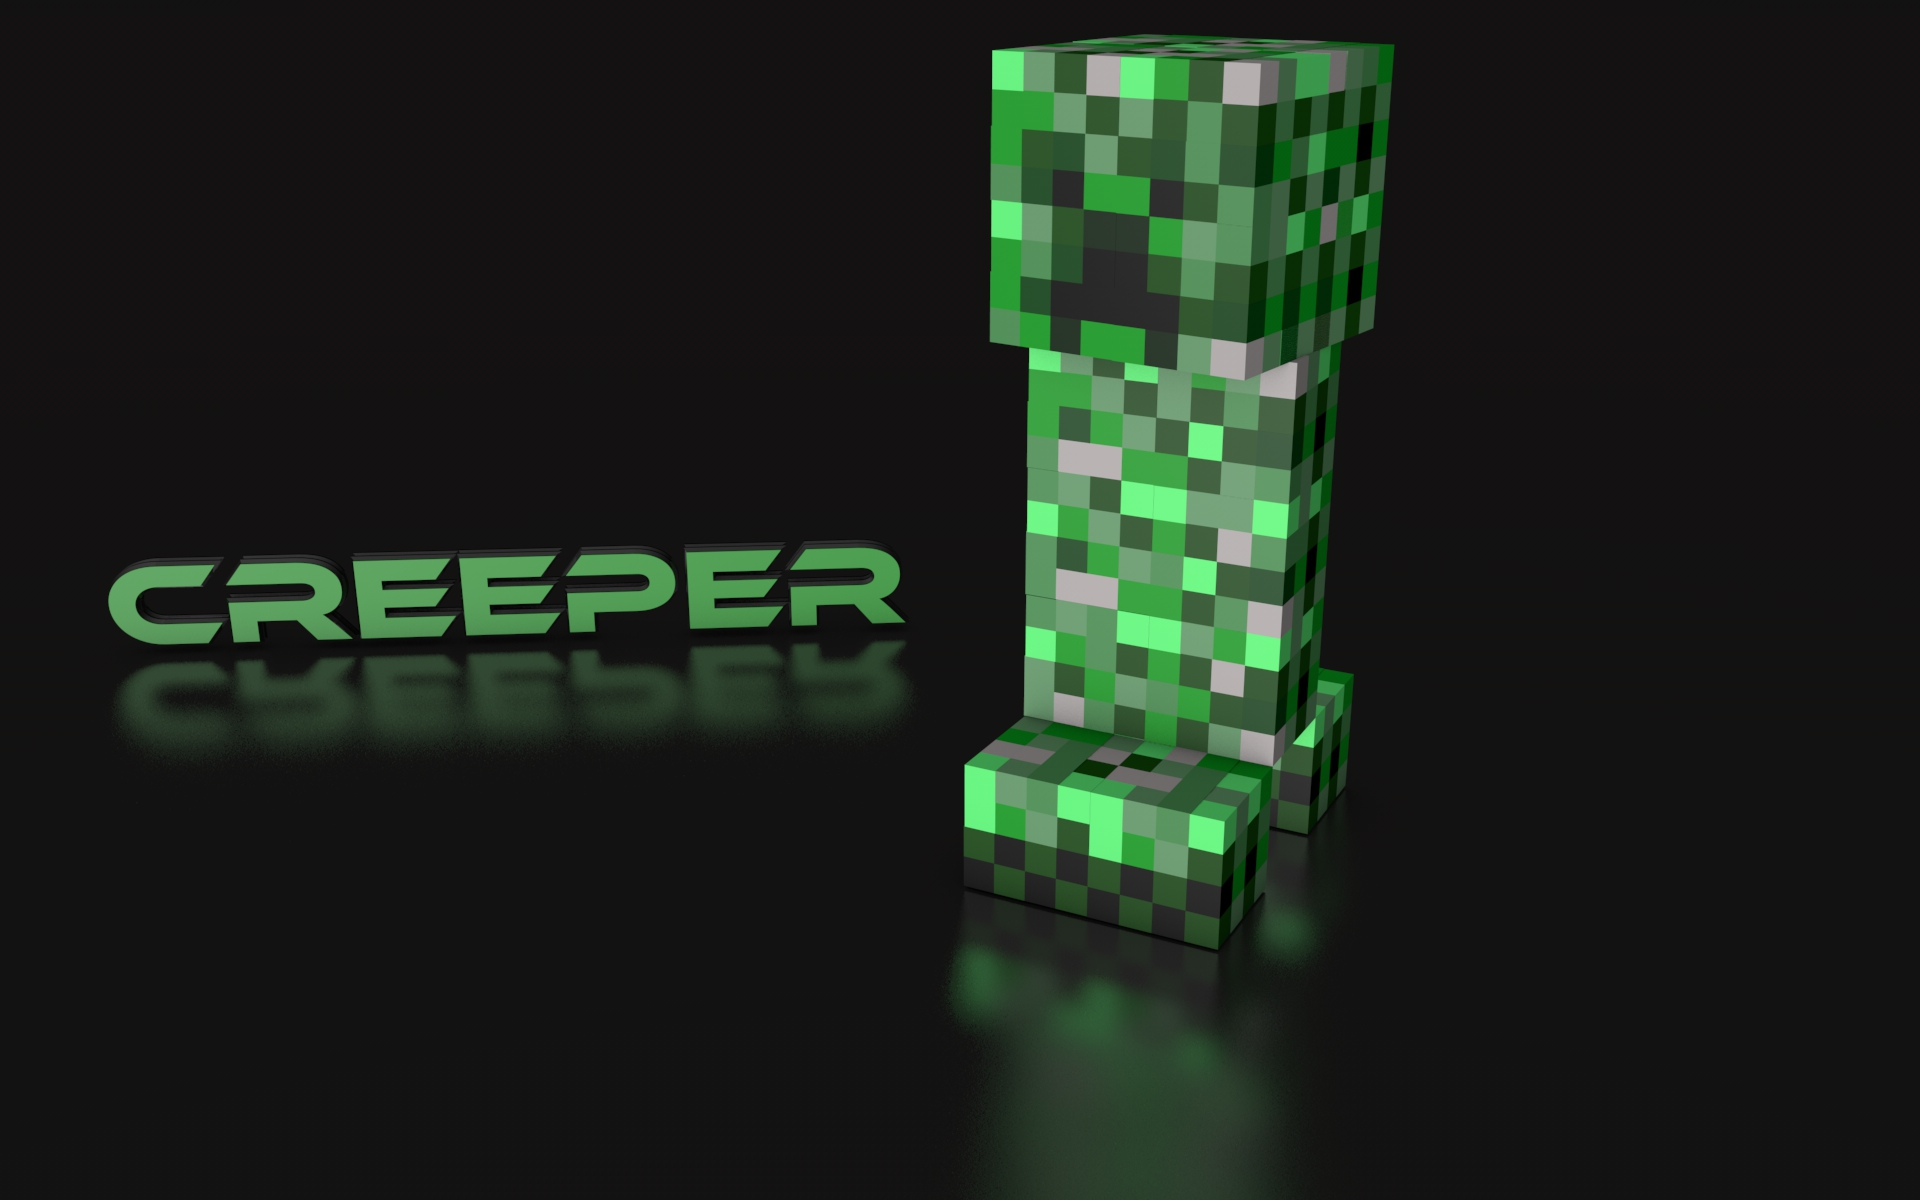 Fabulous Awesome Minecraft Wallpapers Creeper Te For Computer HD Wallpaper Of 1920x1200